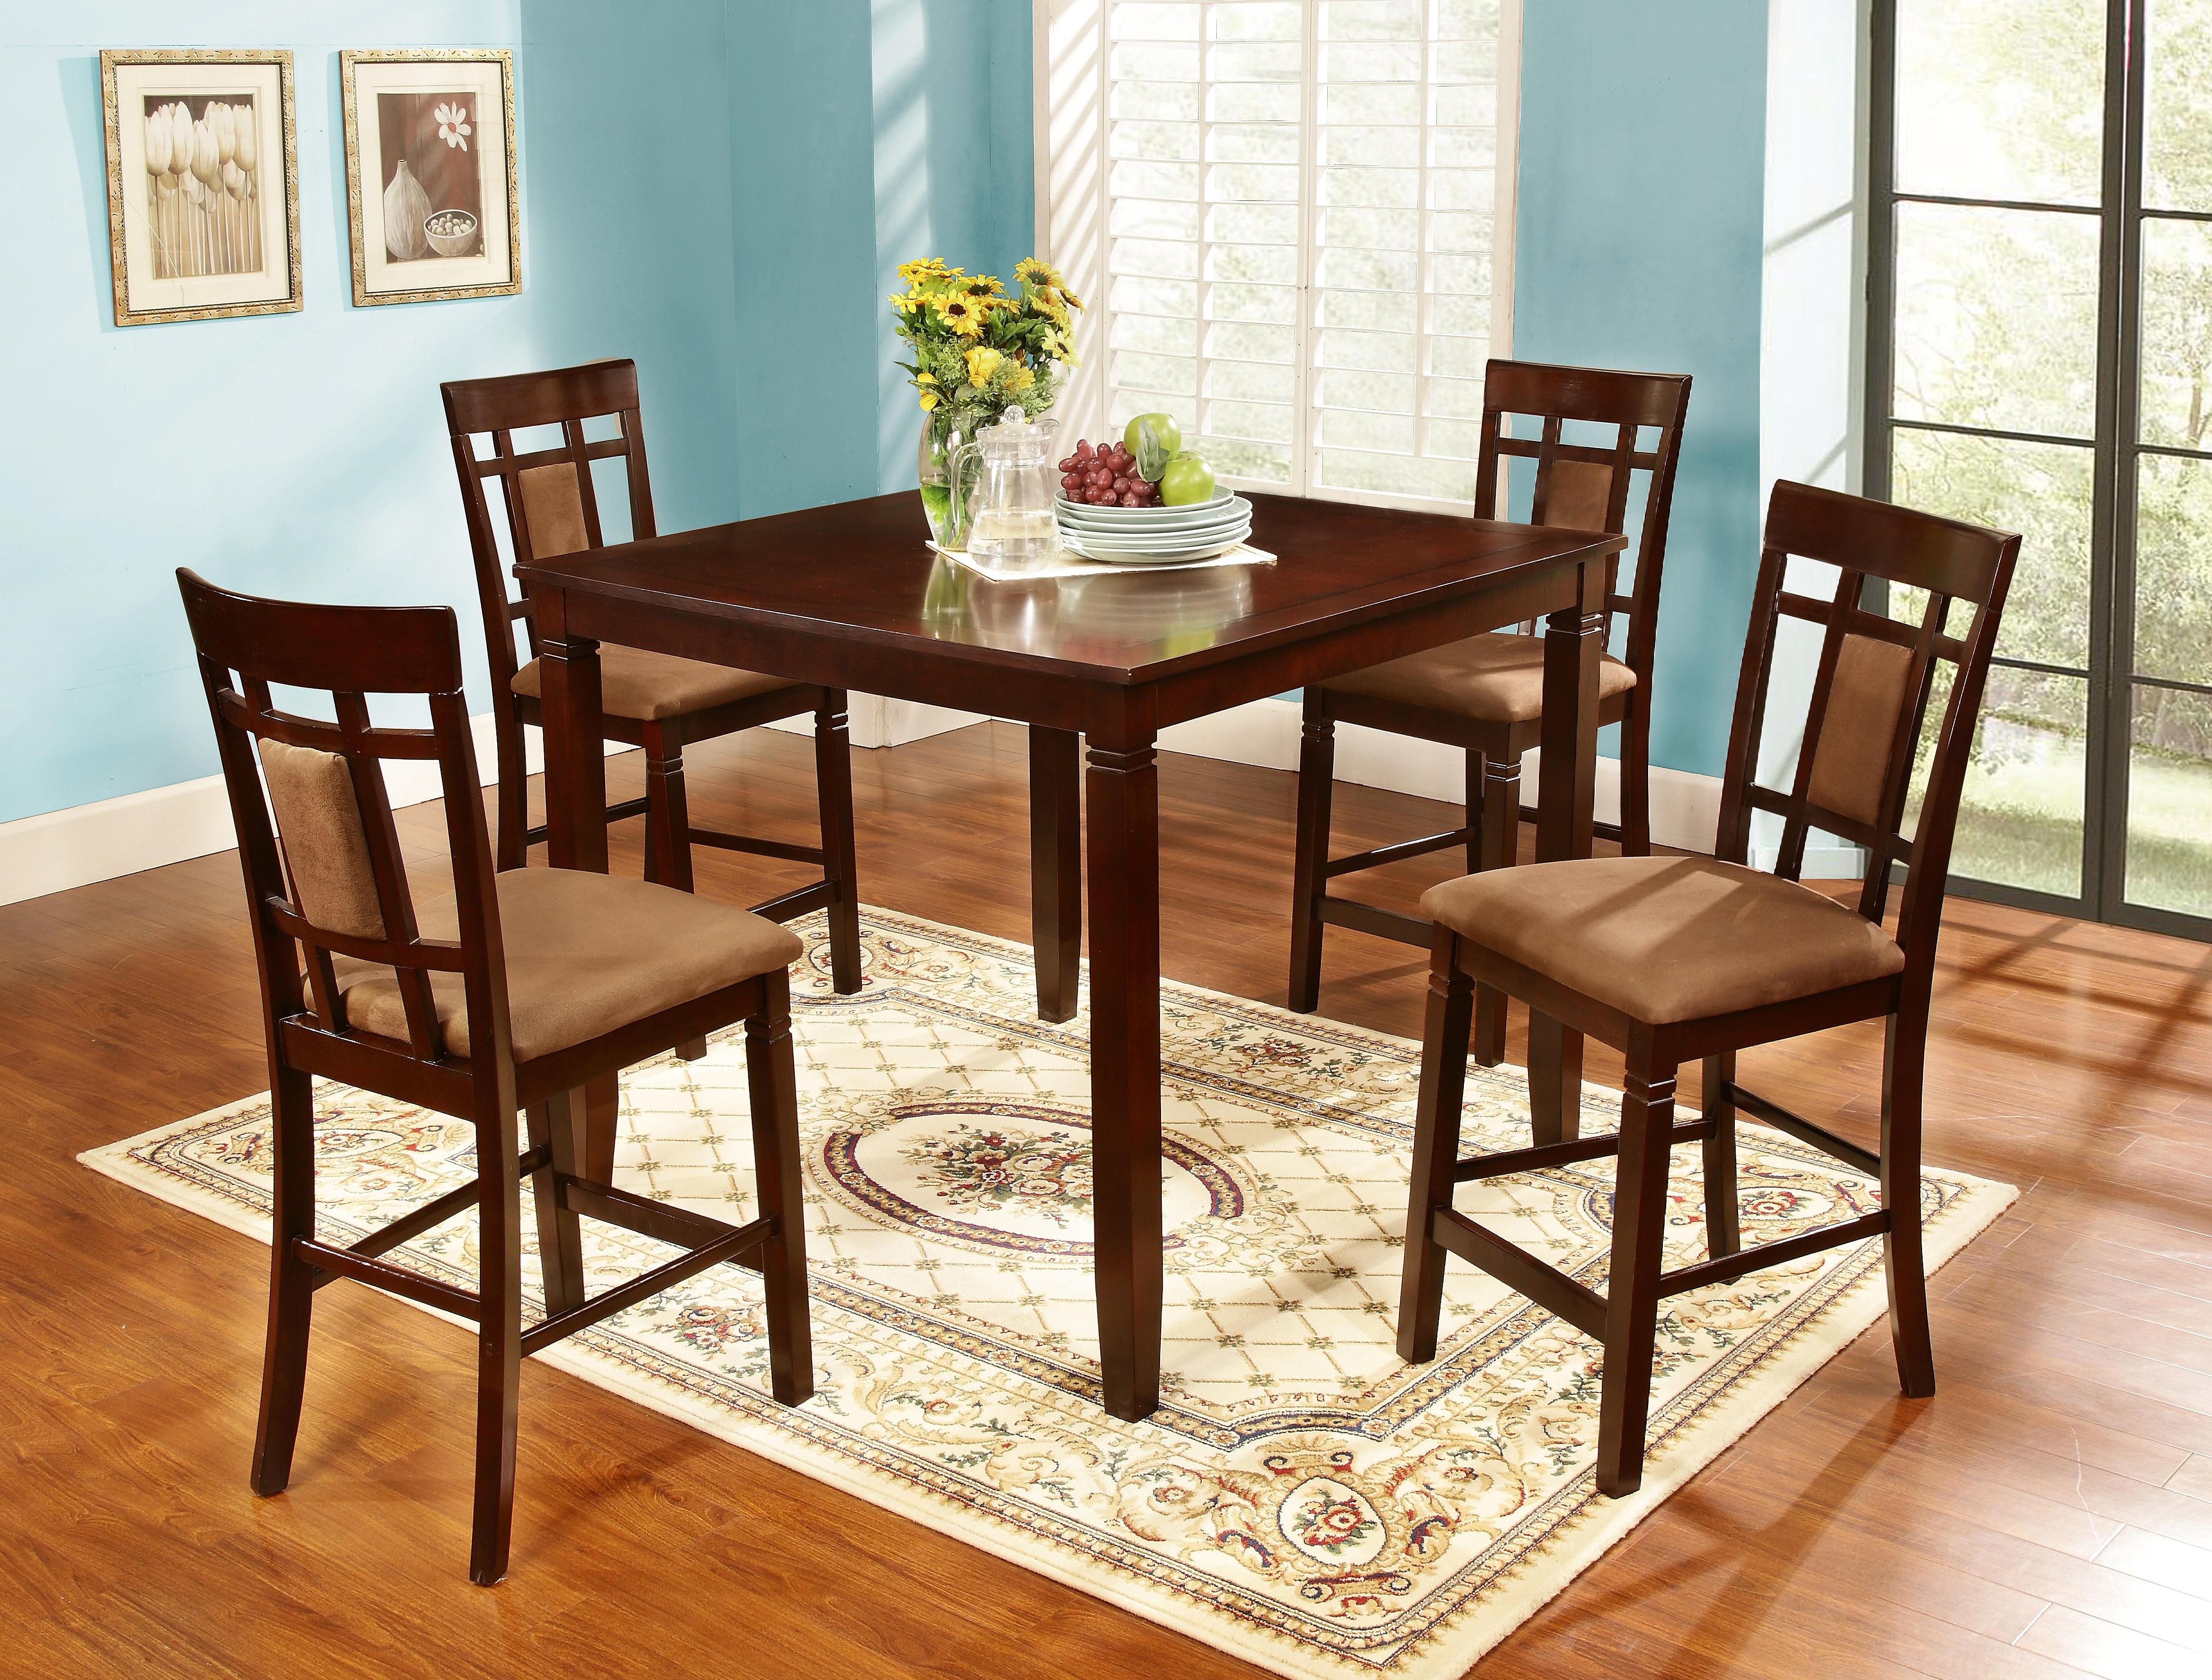 Wayfair With Biggs 5 Piece Counter Height Solid Wood Dining Sets (Set Of 5) (View 2 of 25)